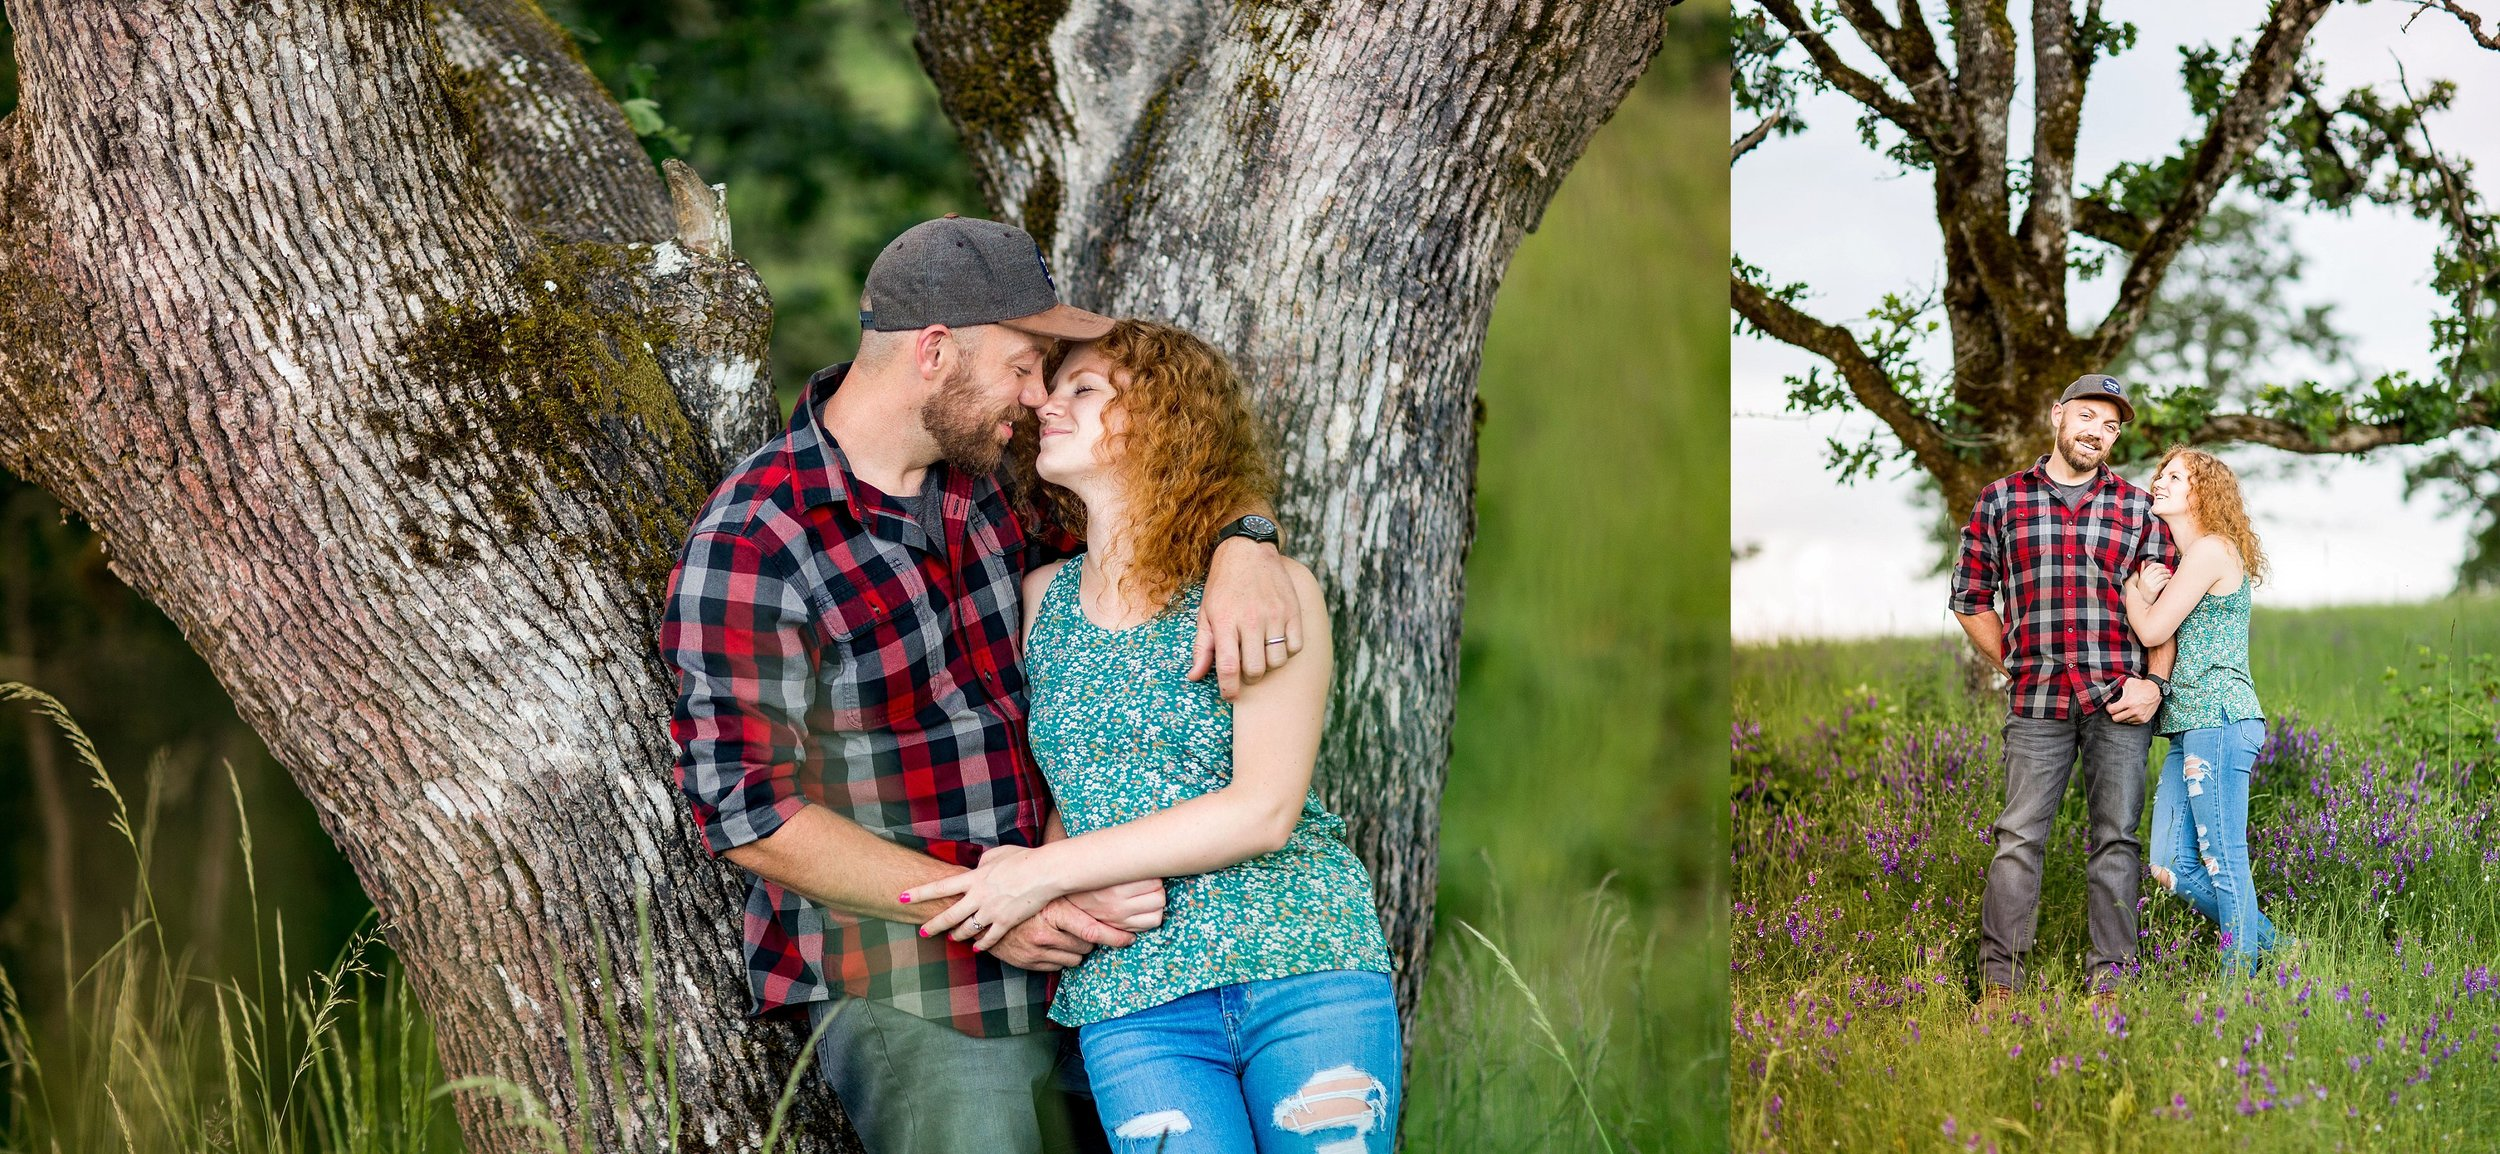 Baskett Slough Engagement Photography